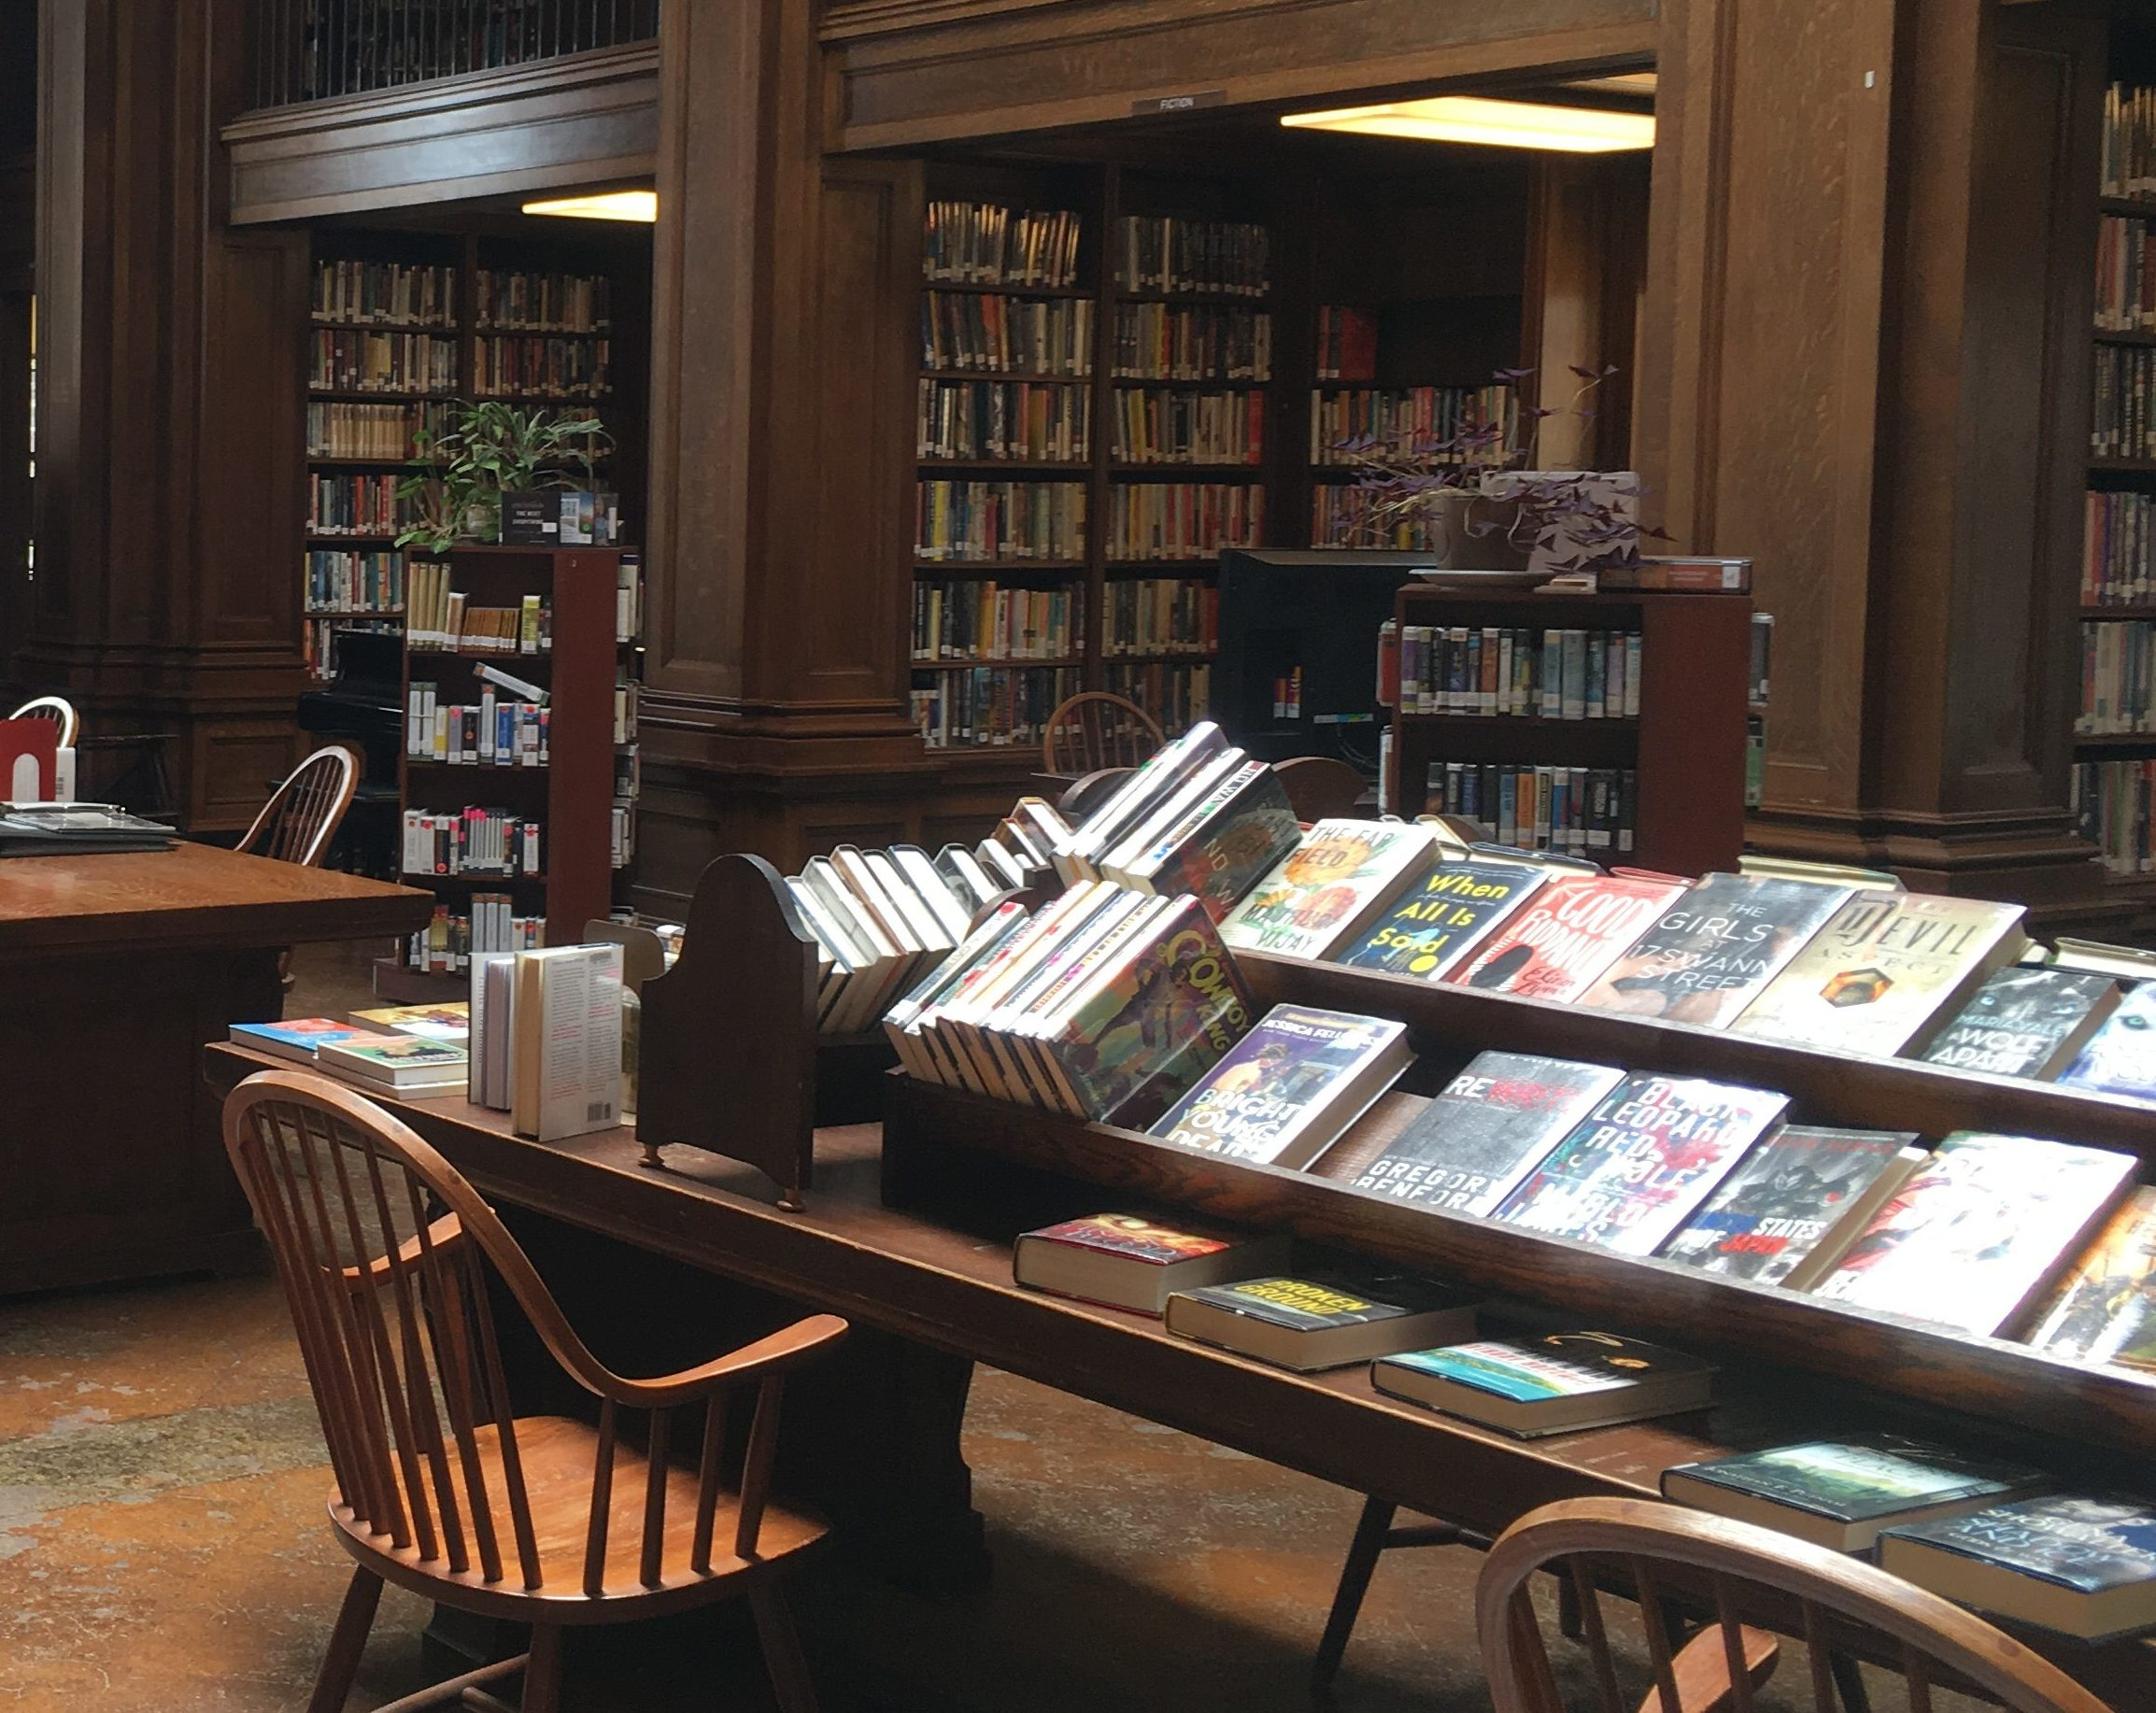 How a Small Library Transformed Itself into a Hub for Science Learning